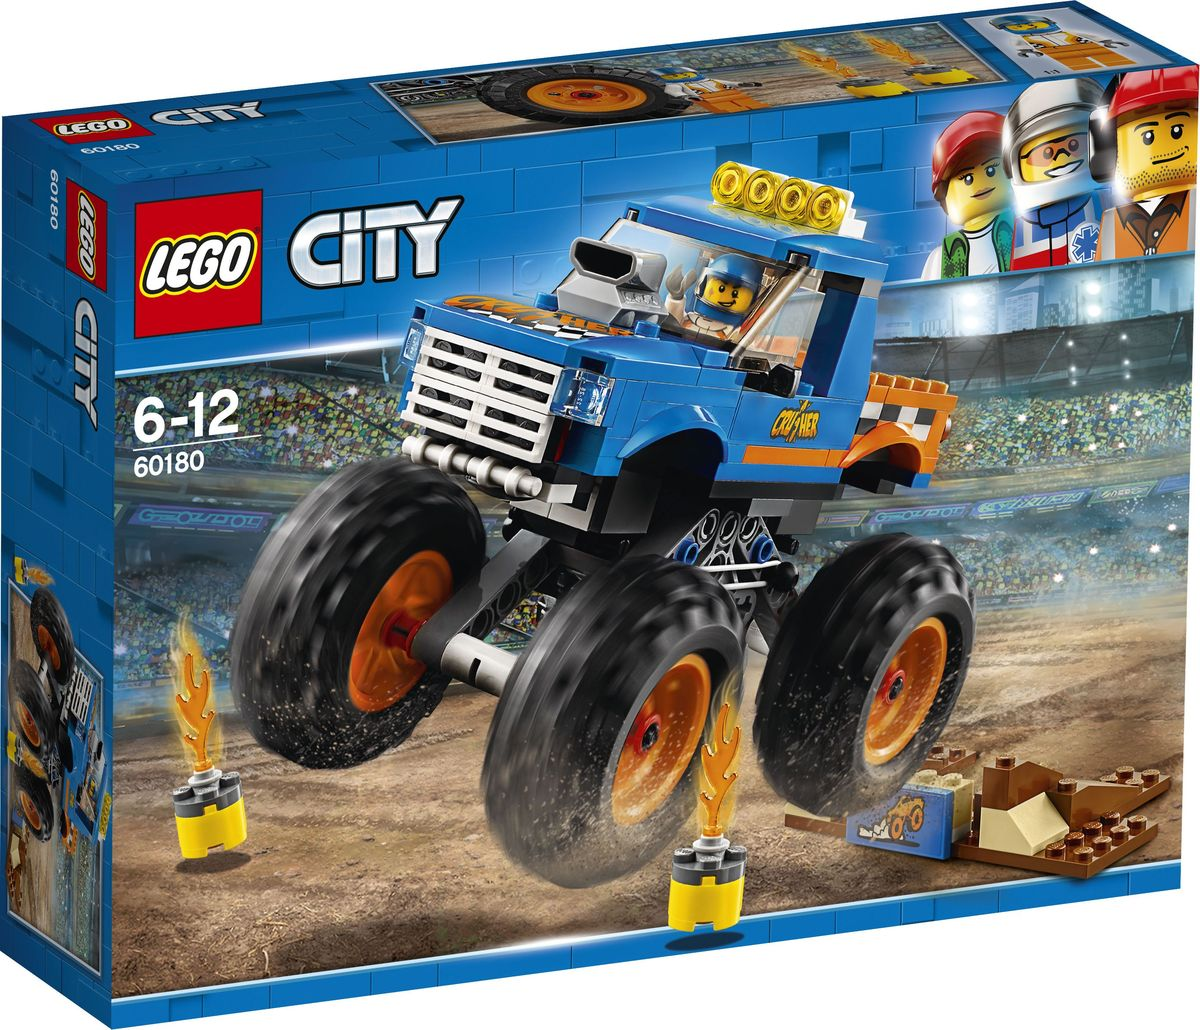 LEGO City Great Vehicles Конструктор Монстр-трак 60180 жми на газ